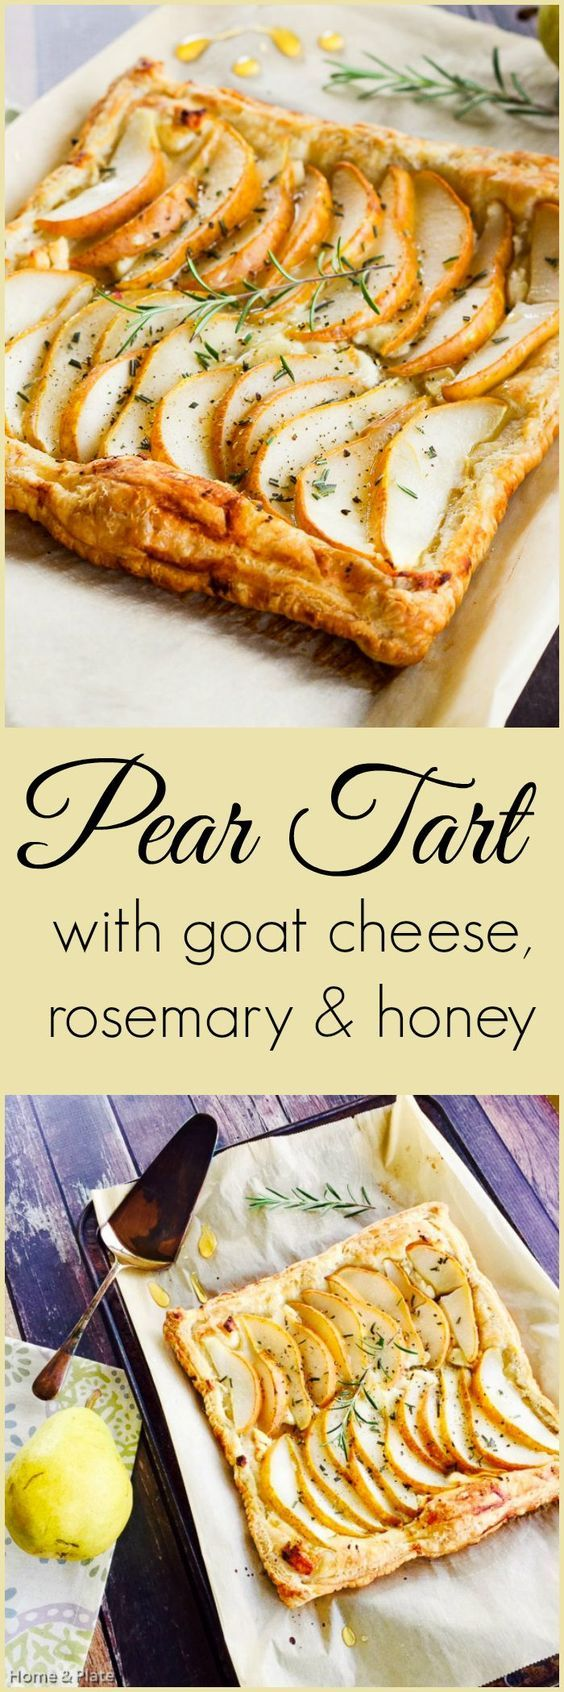 Pear Tart with Goat Cheese, Rosemary & Honey - Enjoy sweet pears on this puff pastry tart. | Home & Plate